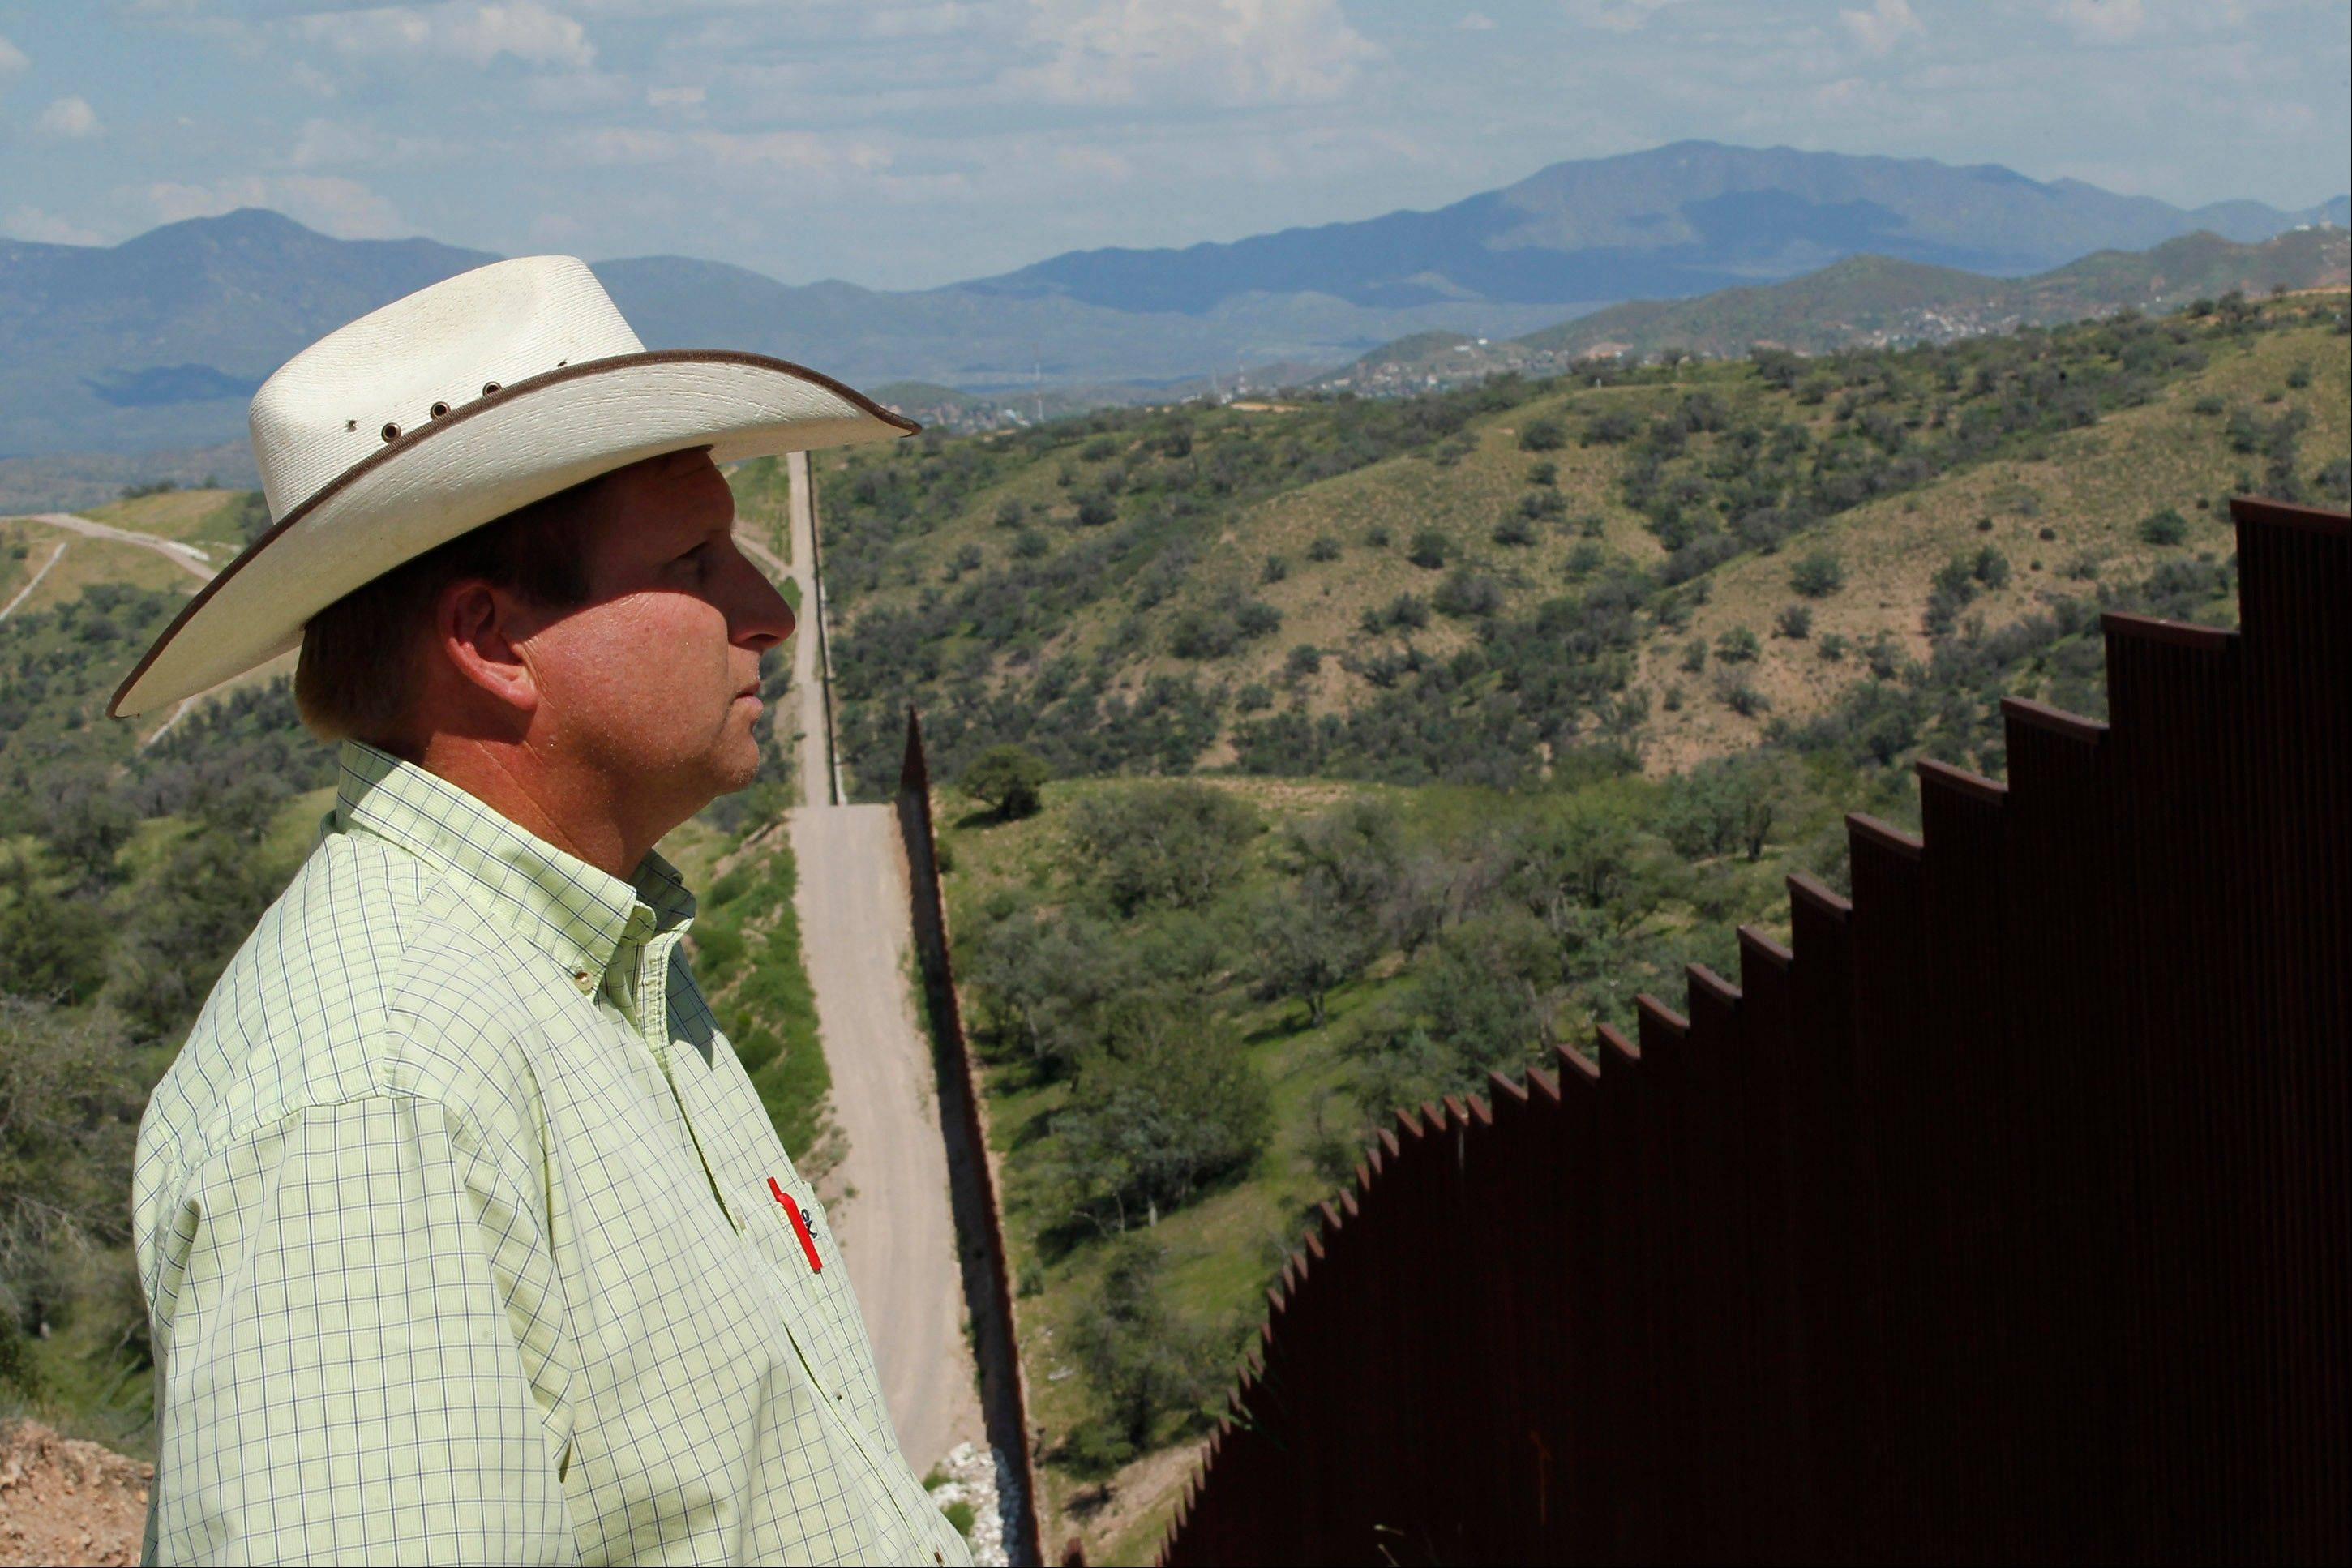 Rancher Dan Bell checks out part of the property he leases at the border fence between the United States and Mexico, in Nogales, Ariz. When Bell drives through the property, he speaks of the hurdles that the Border Patrol faces in his rolling green hills of oak and mesquite trees: The hours it takes to drive to some places, the wilderness areas that are generally off-limits to motorized vehicles, and the environmental reviews required to extend a dirt road.